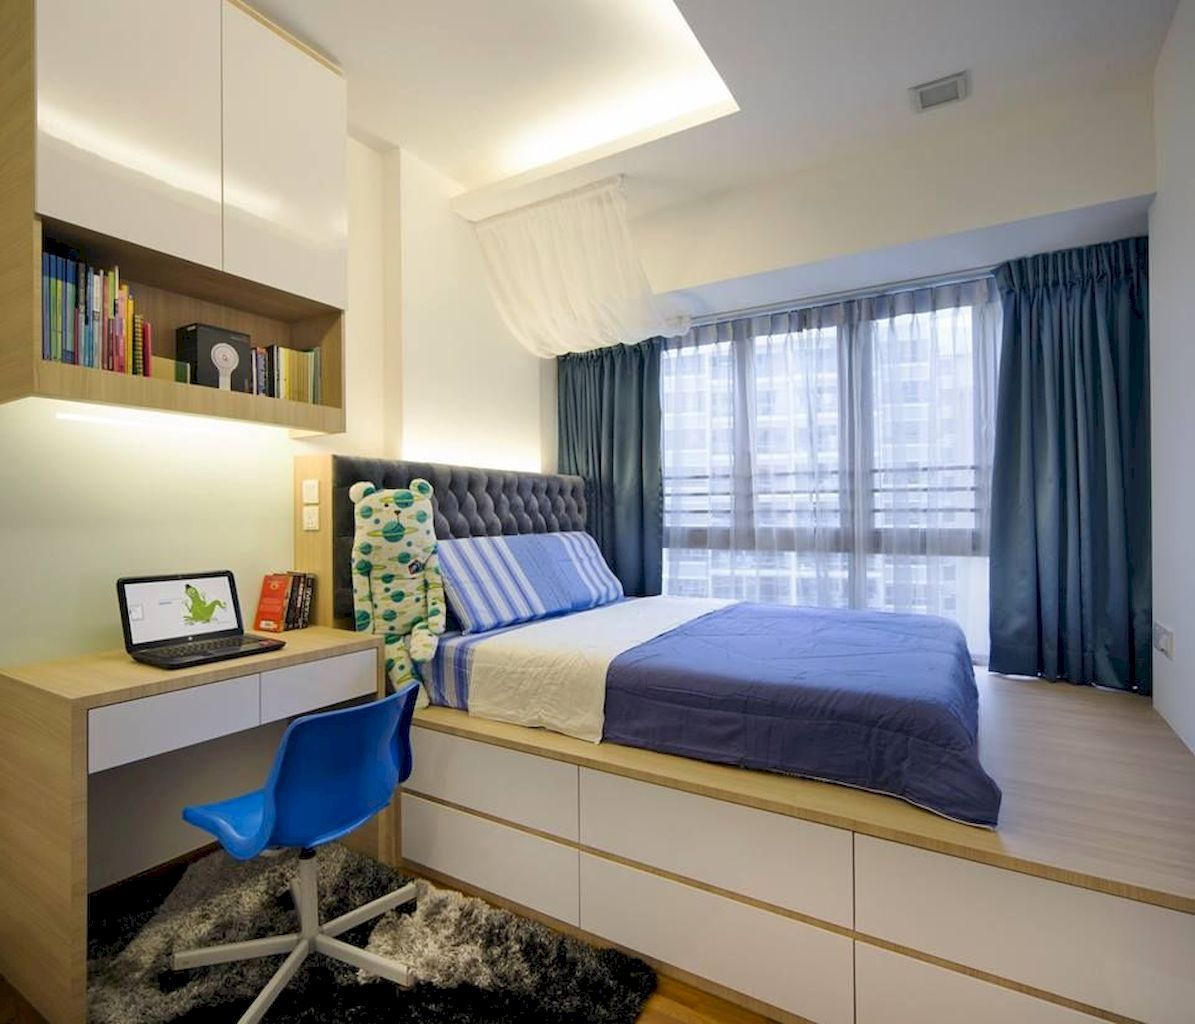 Apartment Bedroom: Small Cozy Bedroom Design Ideas Apartment Therapy